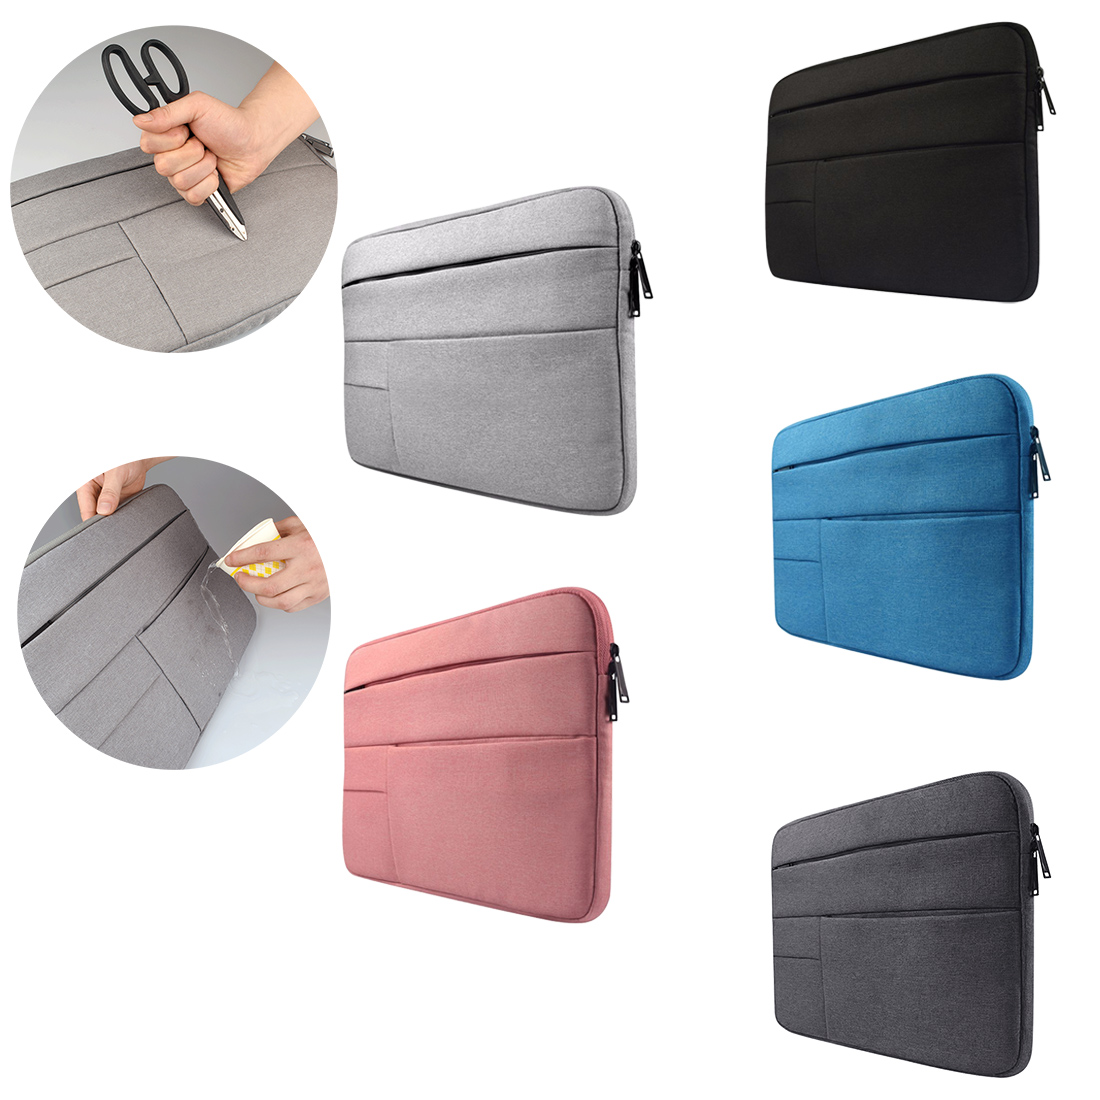 Laptop Sleeve bag for Dell Asus Lenovo HP Acer Computer 11 12 13 14 15 inch for Macbook Air Pro Notebook 15.6 Sleeve Case Simple